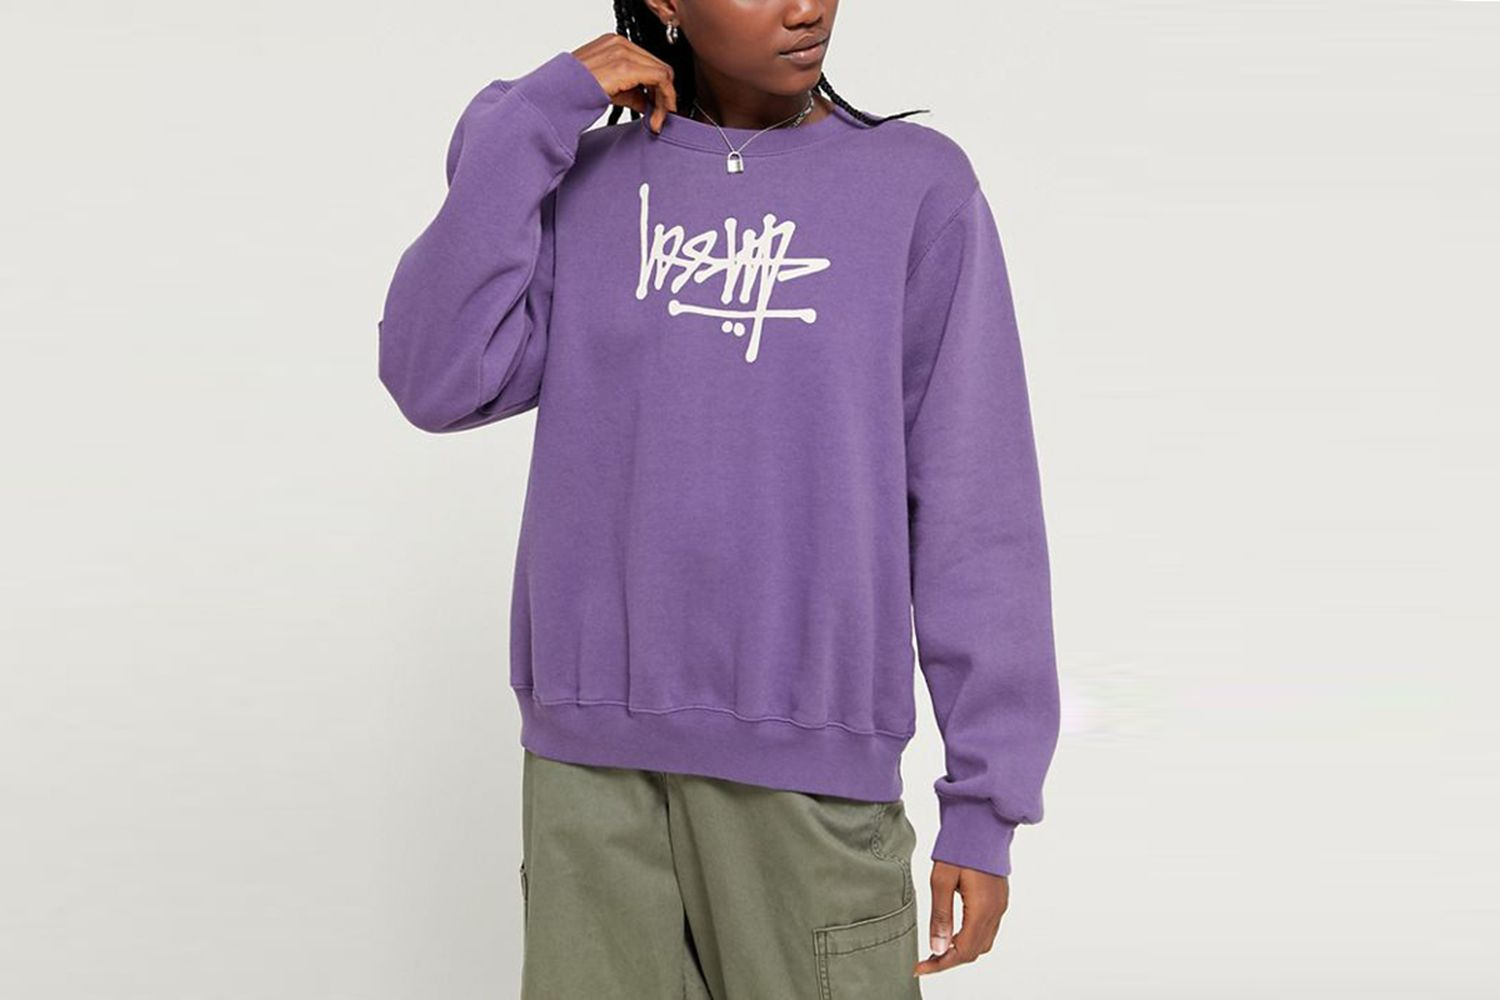 Flip Fleece Crew Neck Sweatshirt